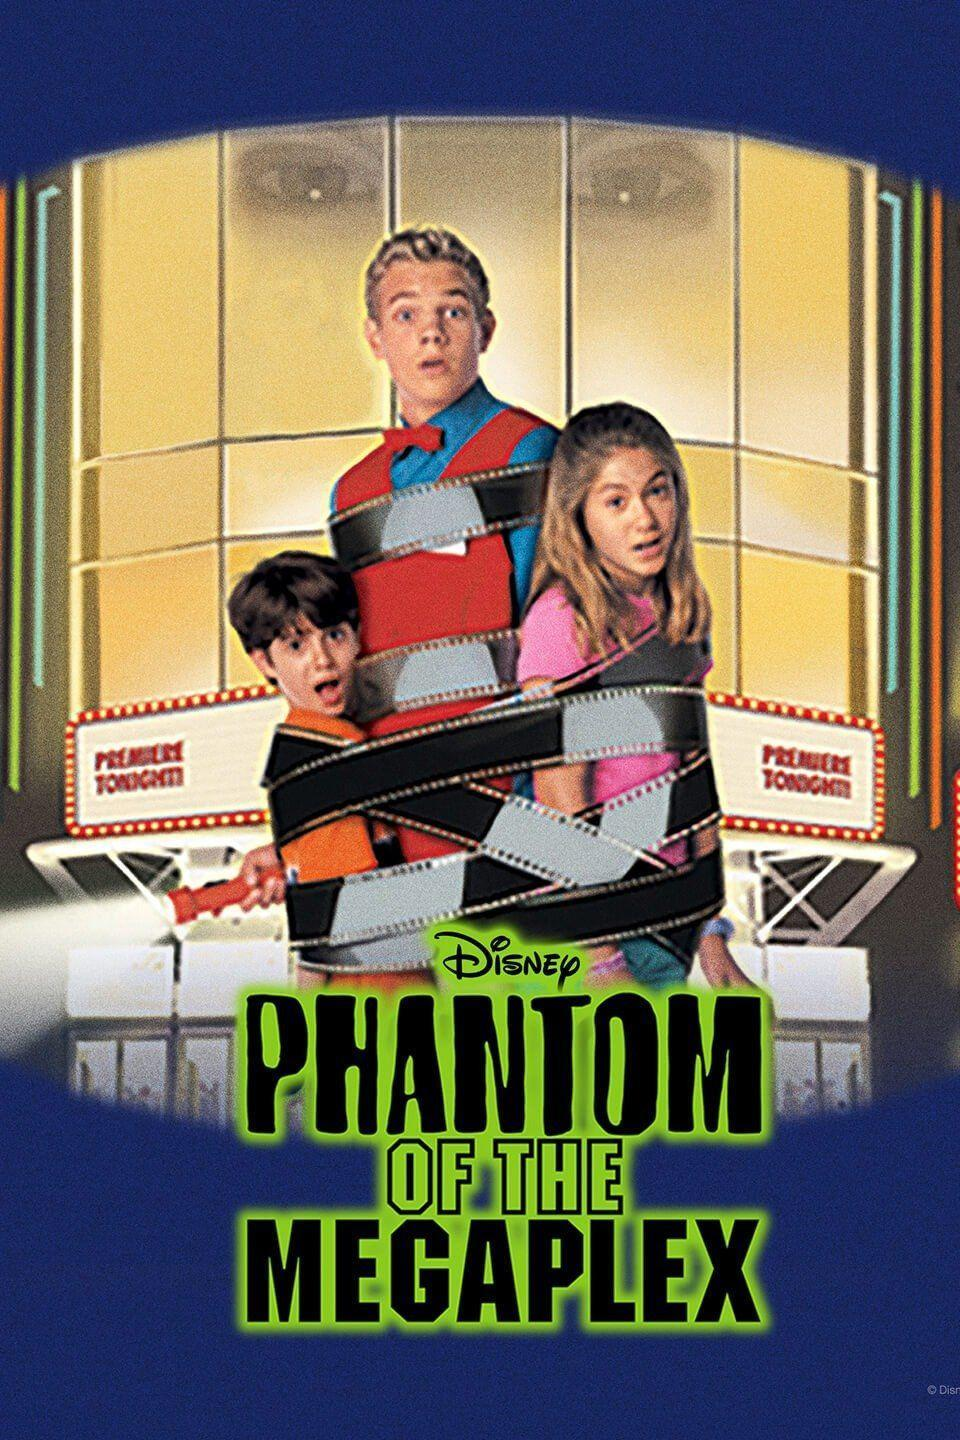 """<p>Crazy things are happening at the movie theater on a very important premier night. Silliness ensure when candy is spilling all over the floors, soda straws are flying, and the projectors are going berserk. Who's responsible for this mess? Little kids will love figuring out whodunnit.</p><p><a class=""""link rapid-noclick-resp"""" href=""""https://go.redirectingat.com?id=74968X1596630&url=https%3A%2F%2Fwww.disneyplus.com%2Fmovies%2Fphantom-of-the-megaplex%2Fq32tXxE9gXZL&sref=https%3A%2F%2Fwww.countryliving.com%2Flife%2Fentertainment%2Fg32748070%2Fdisney-plus-halloween-movies%2F"""" rel=""""nofollow noopener"""" target=""""_blank"""" data-ylk=""""slk:WATCH NOW"""">WATCH NOW</a></p>"""